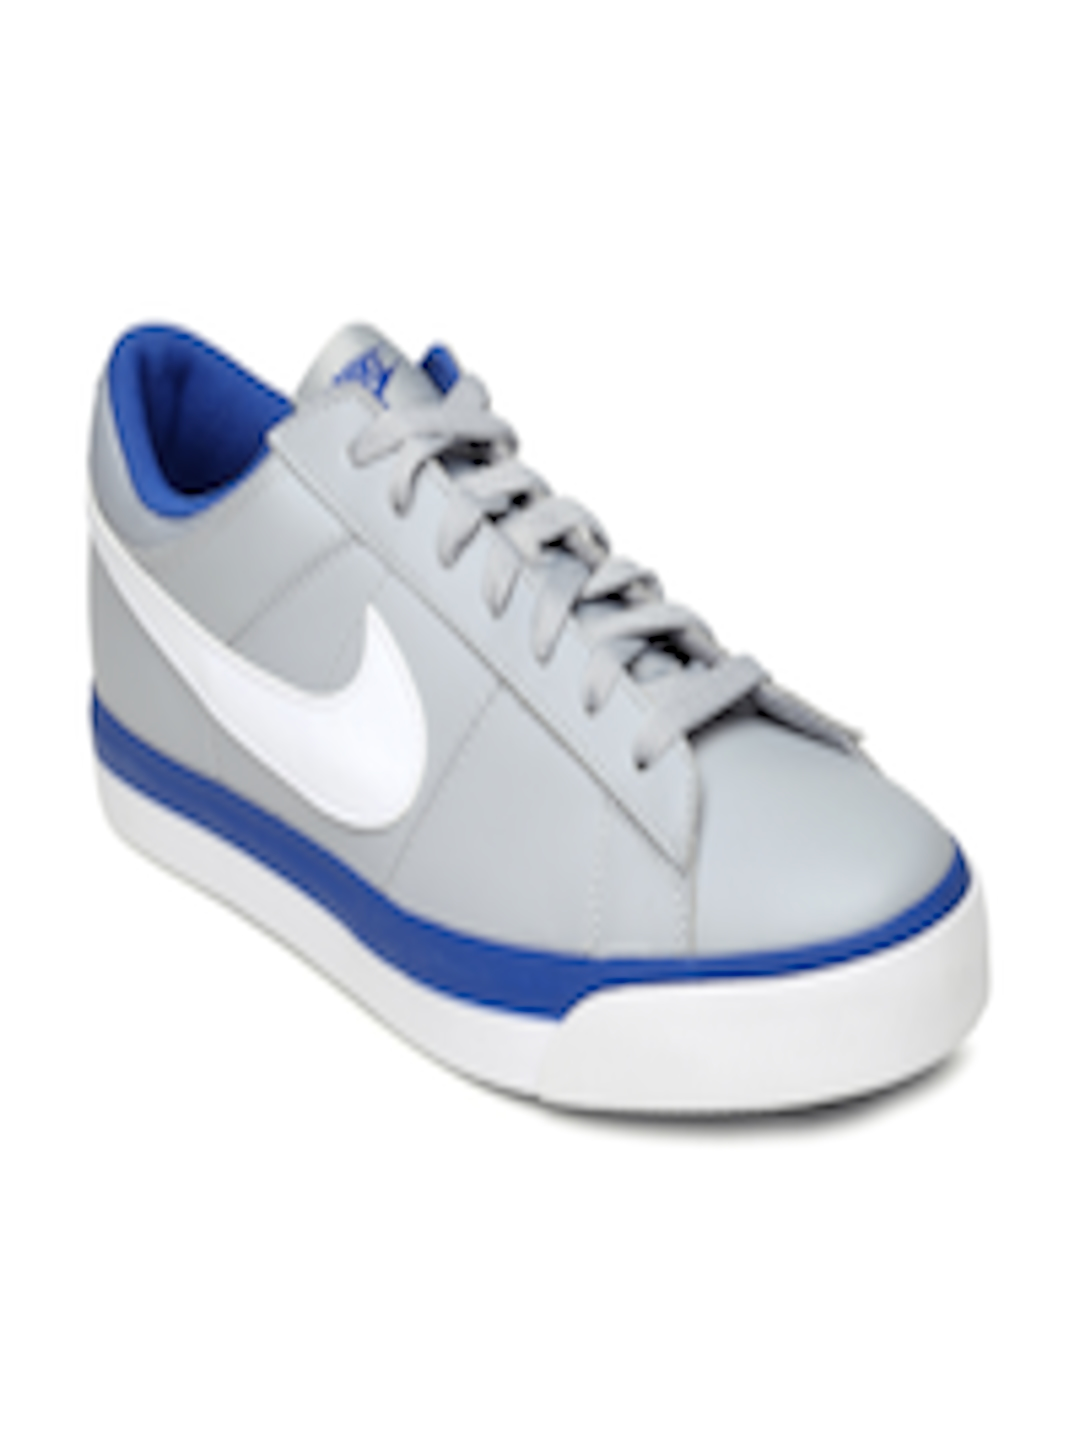 942d635eaedd Buy Nike Men Grey Match Supreme Leather Casual Shoes - Casual Shoes for Men  857272